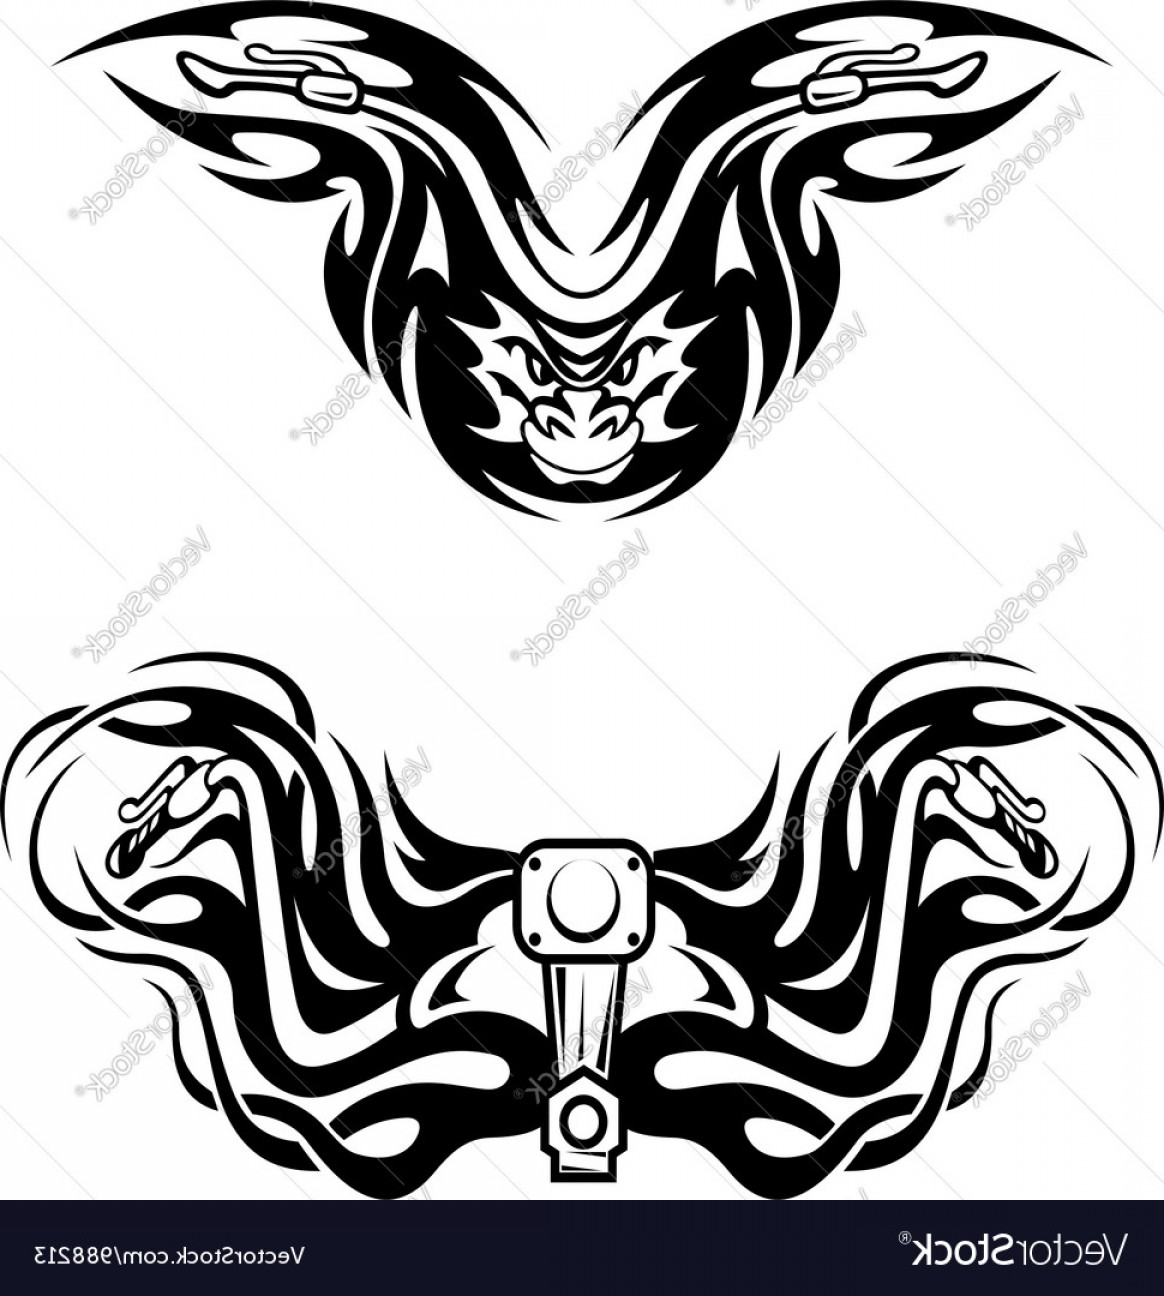 Tribal Flames Vector Car: Motorcycles Mascots With Tribal Flames Vector